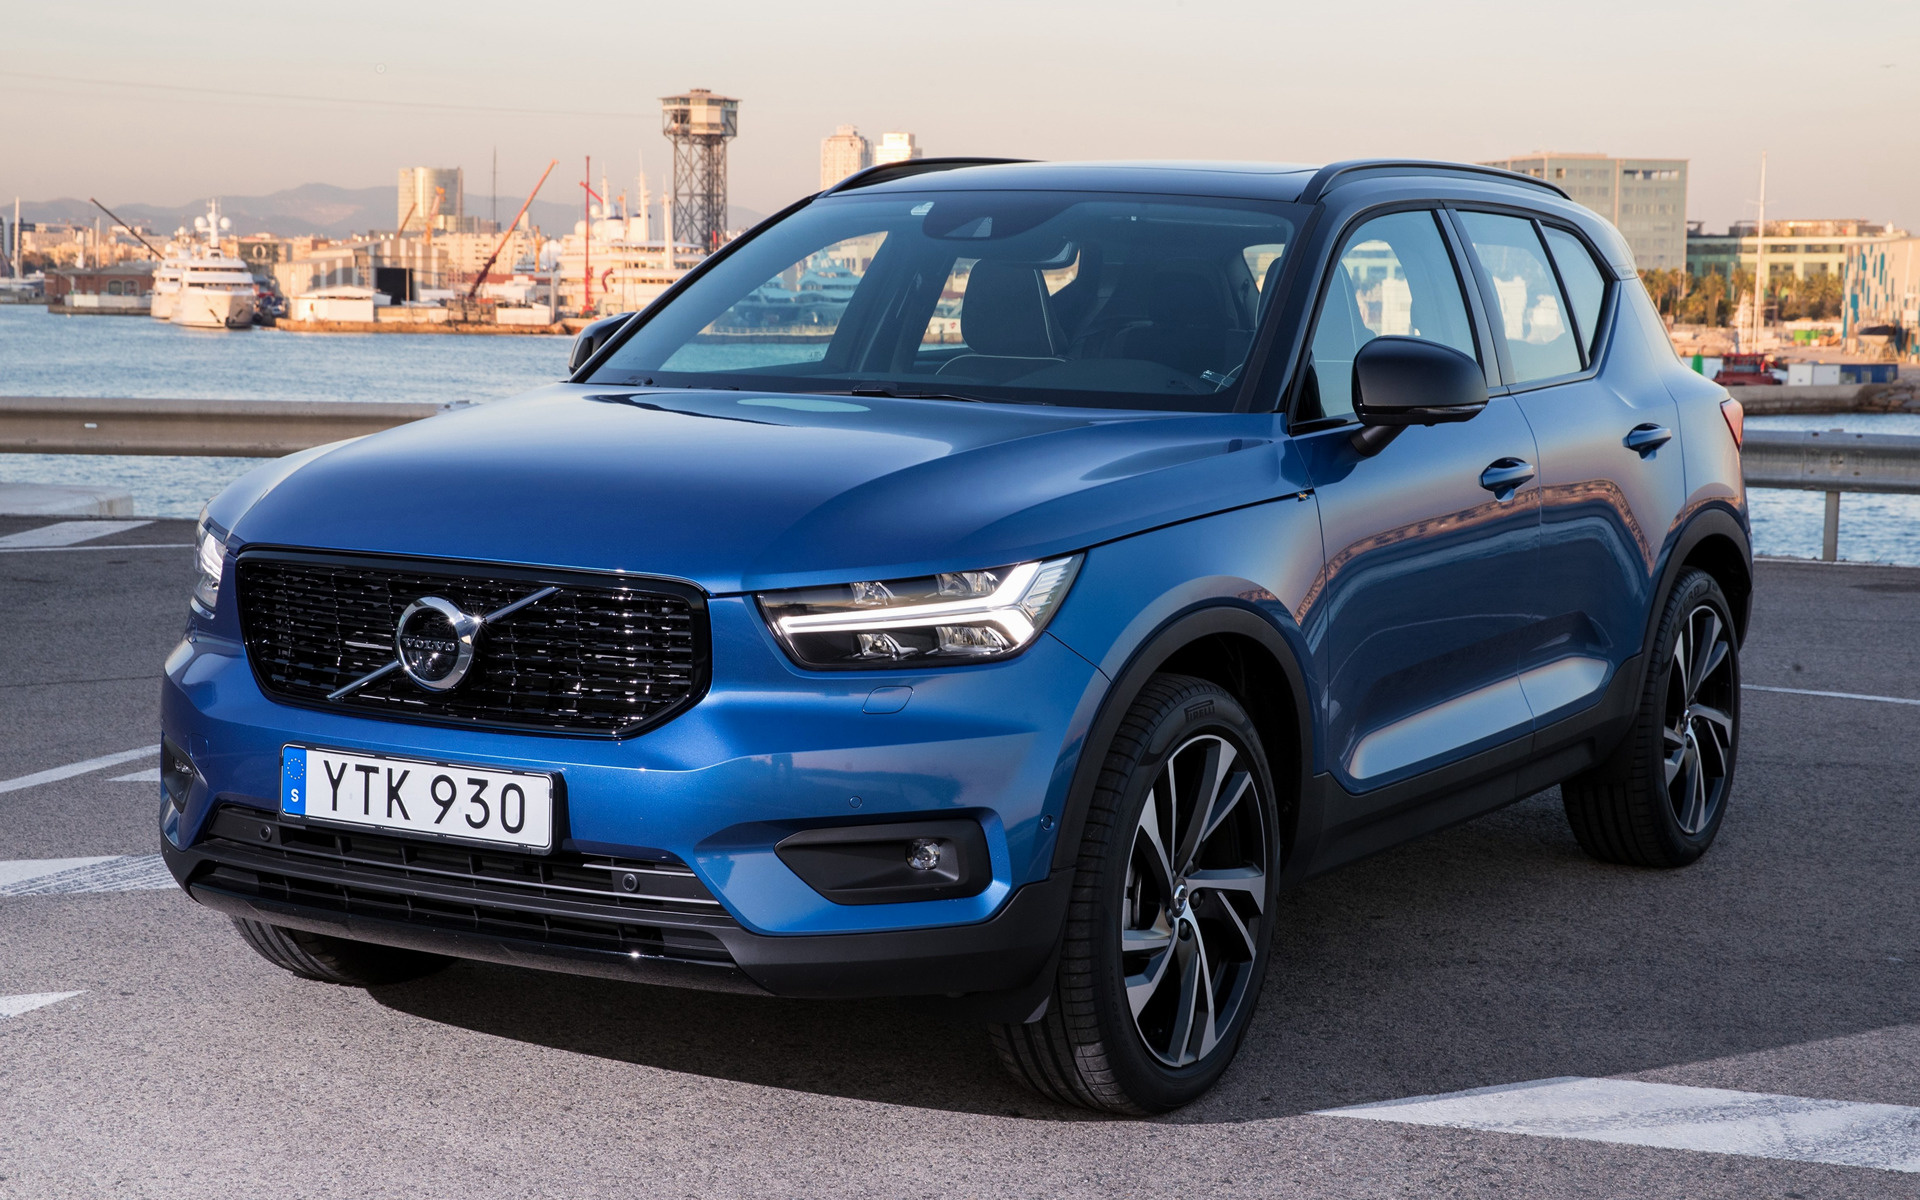 Suv Wallpapers Hd Volvo Xc40 R Design 2017 Wallpapers And Hd Images Car